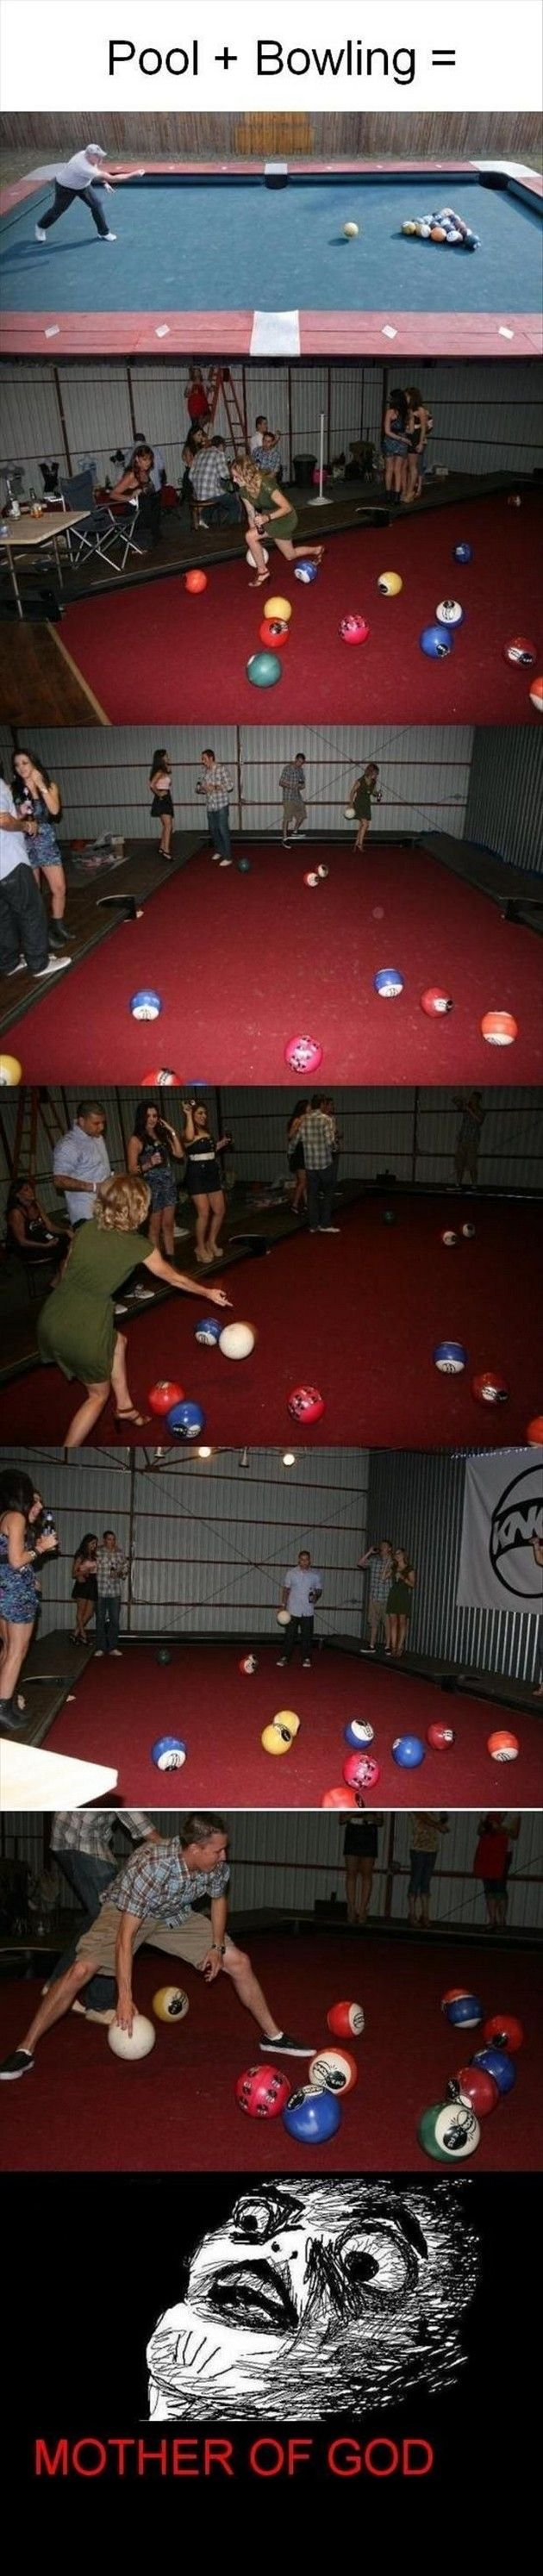 Cool Stuff I Want (08 Pics) Pool + Bowling